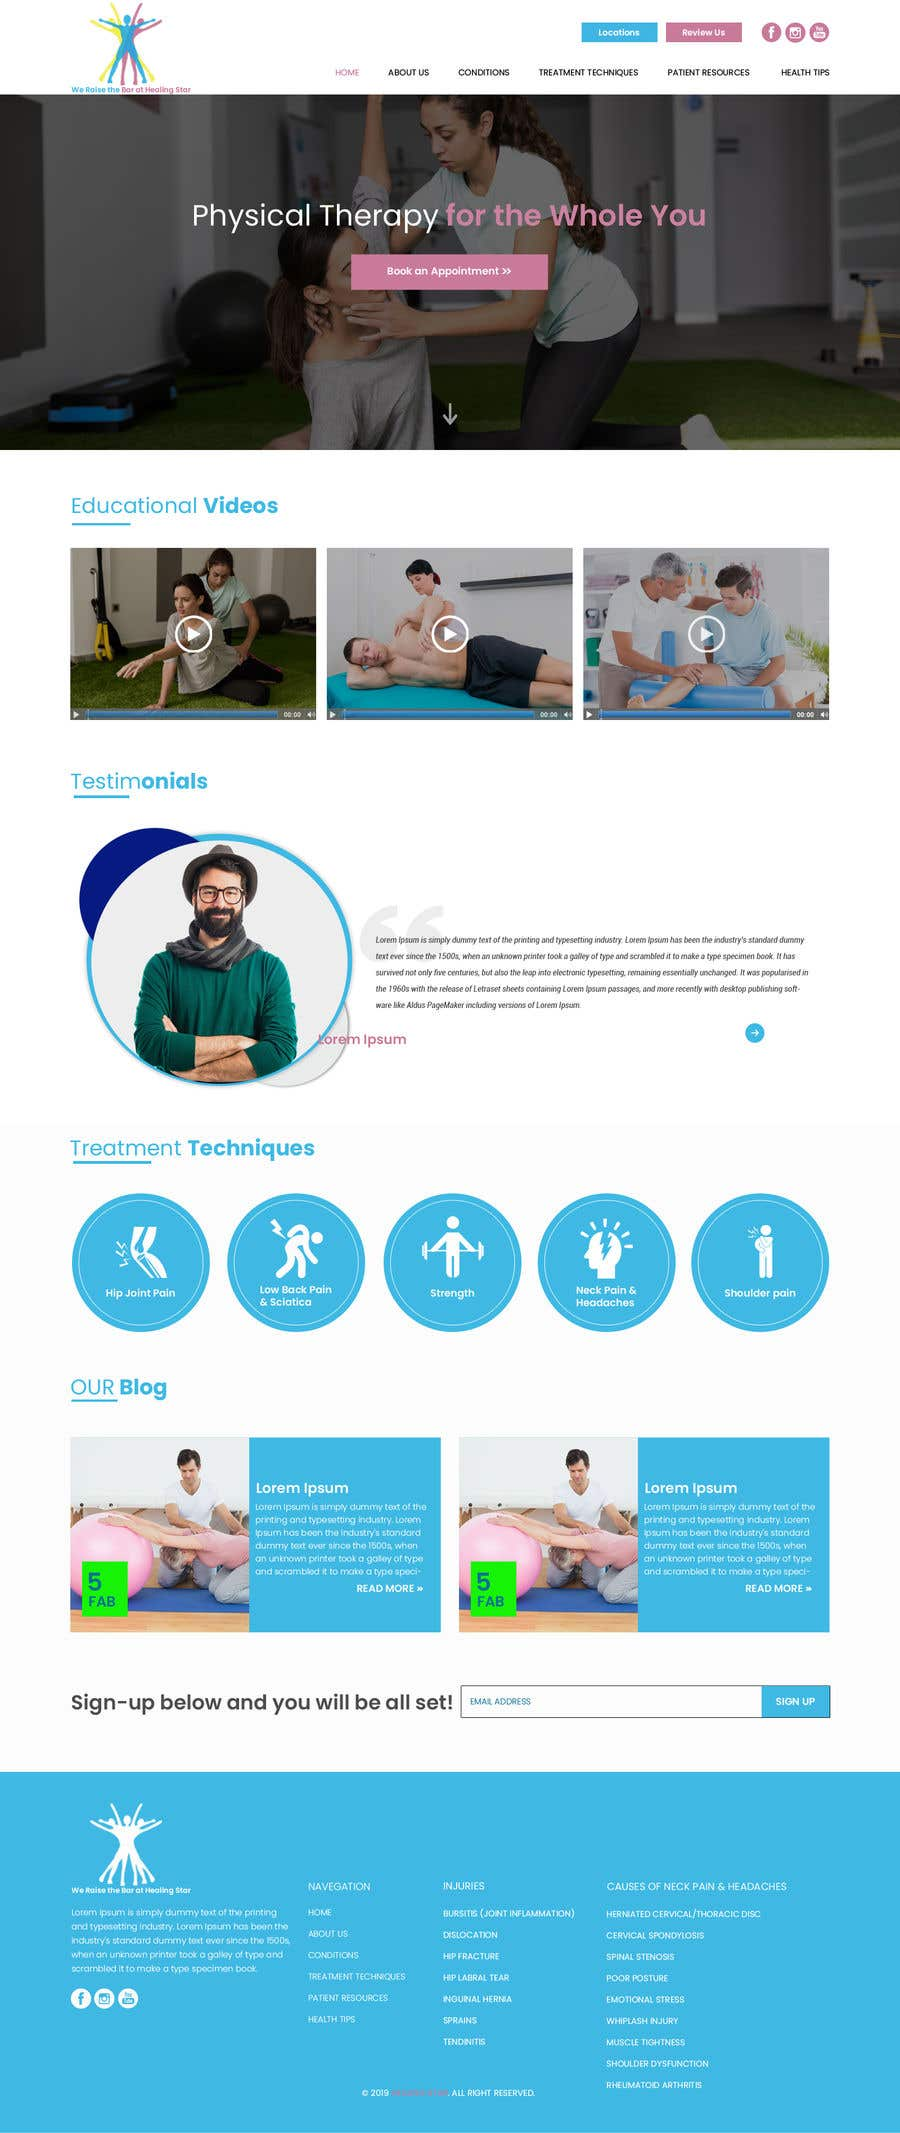 Penyertaan Peraduan #14 untuk Need PSD for physical therapy website home page